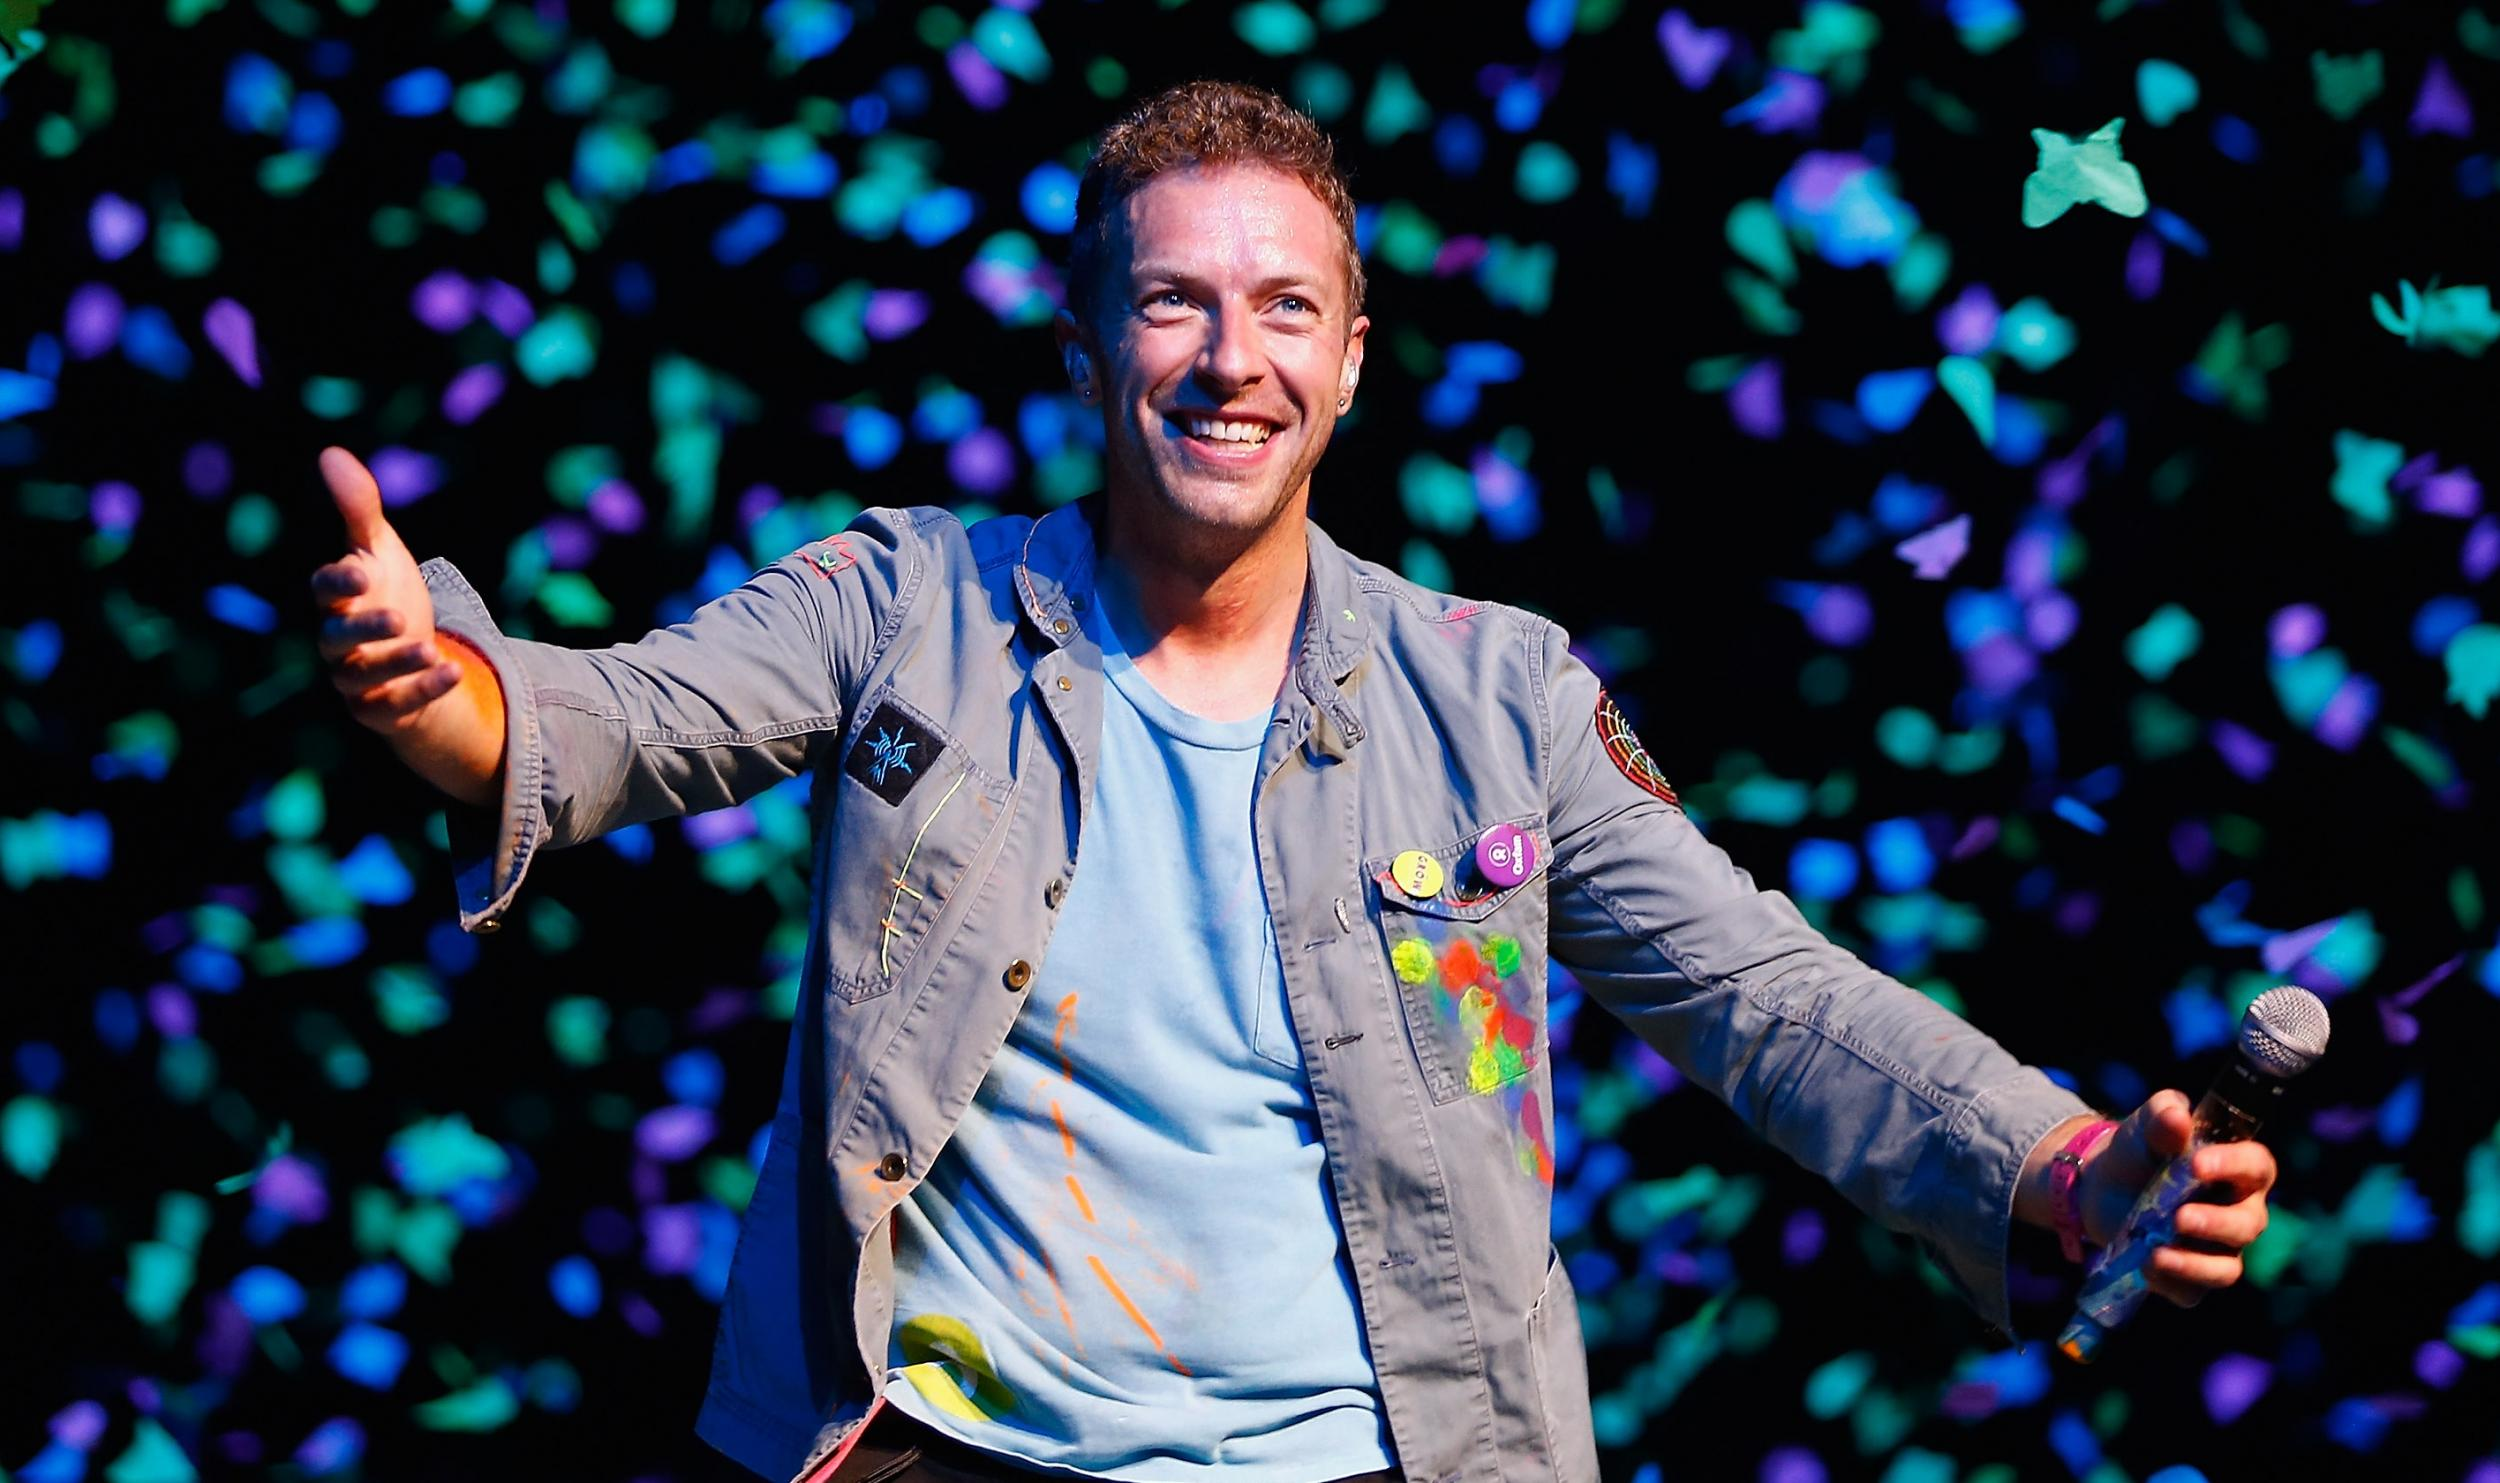 Coldplay, the most conventional band on the planet, will not make a conventional record again